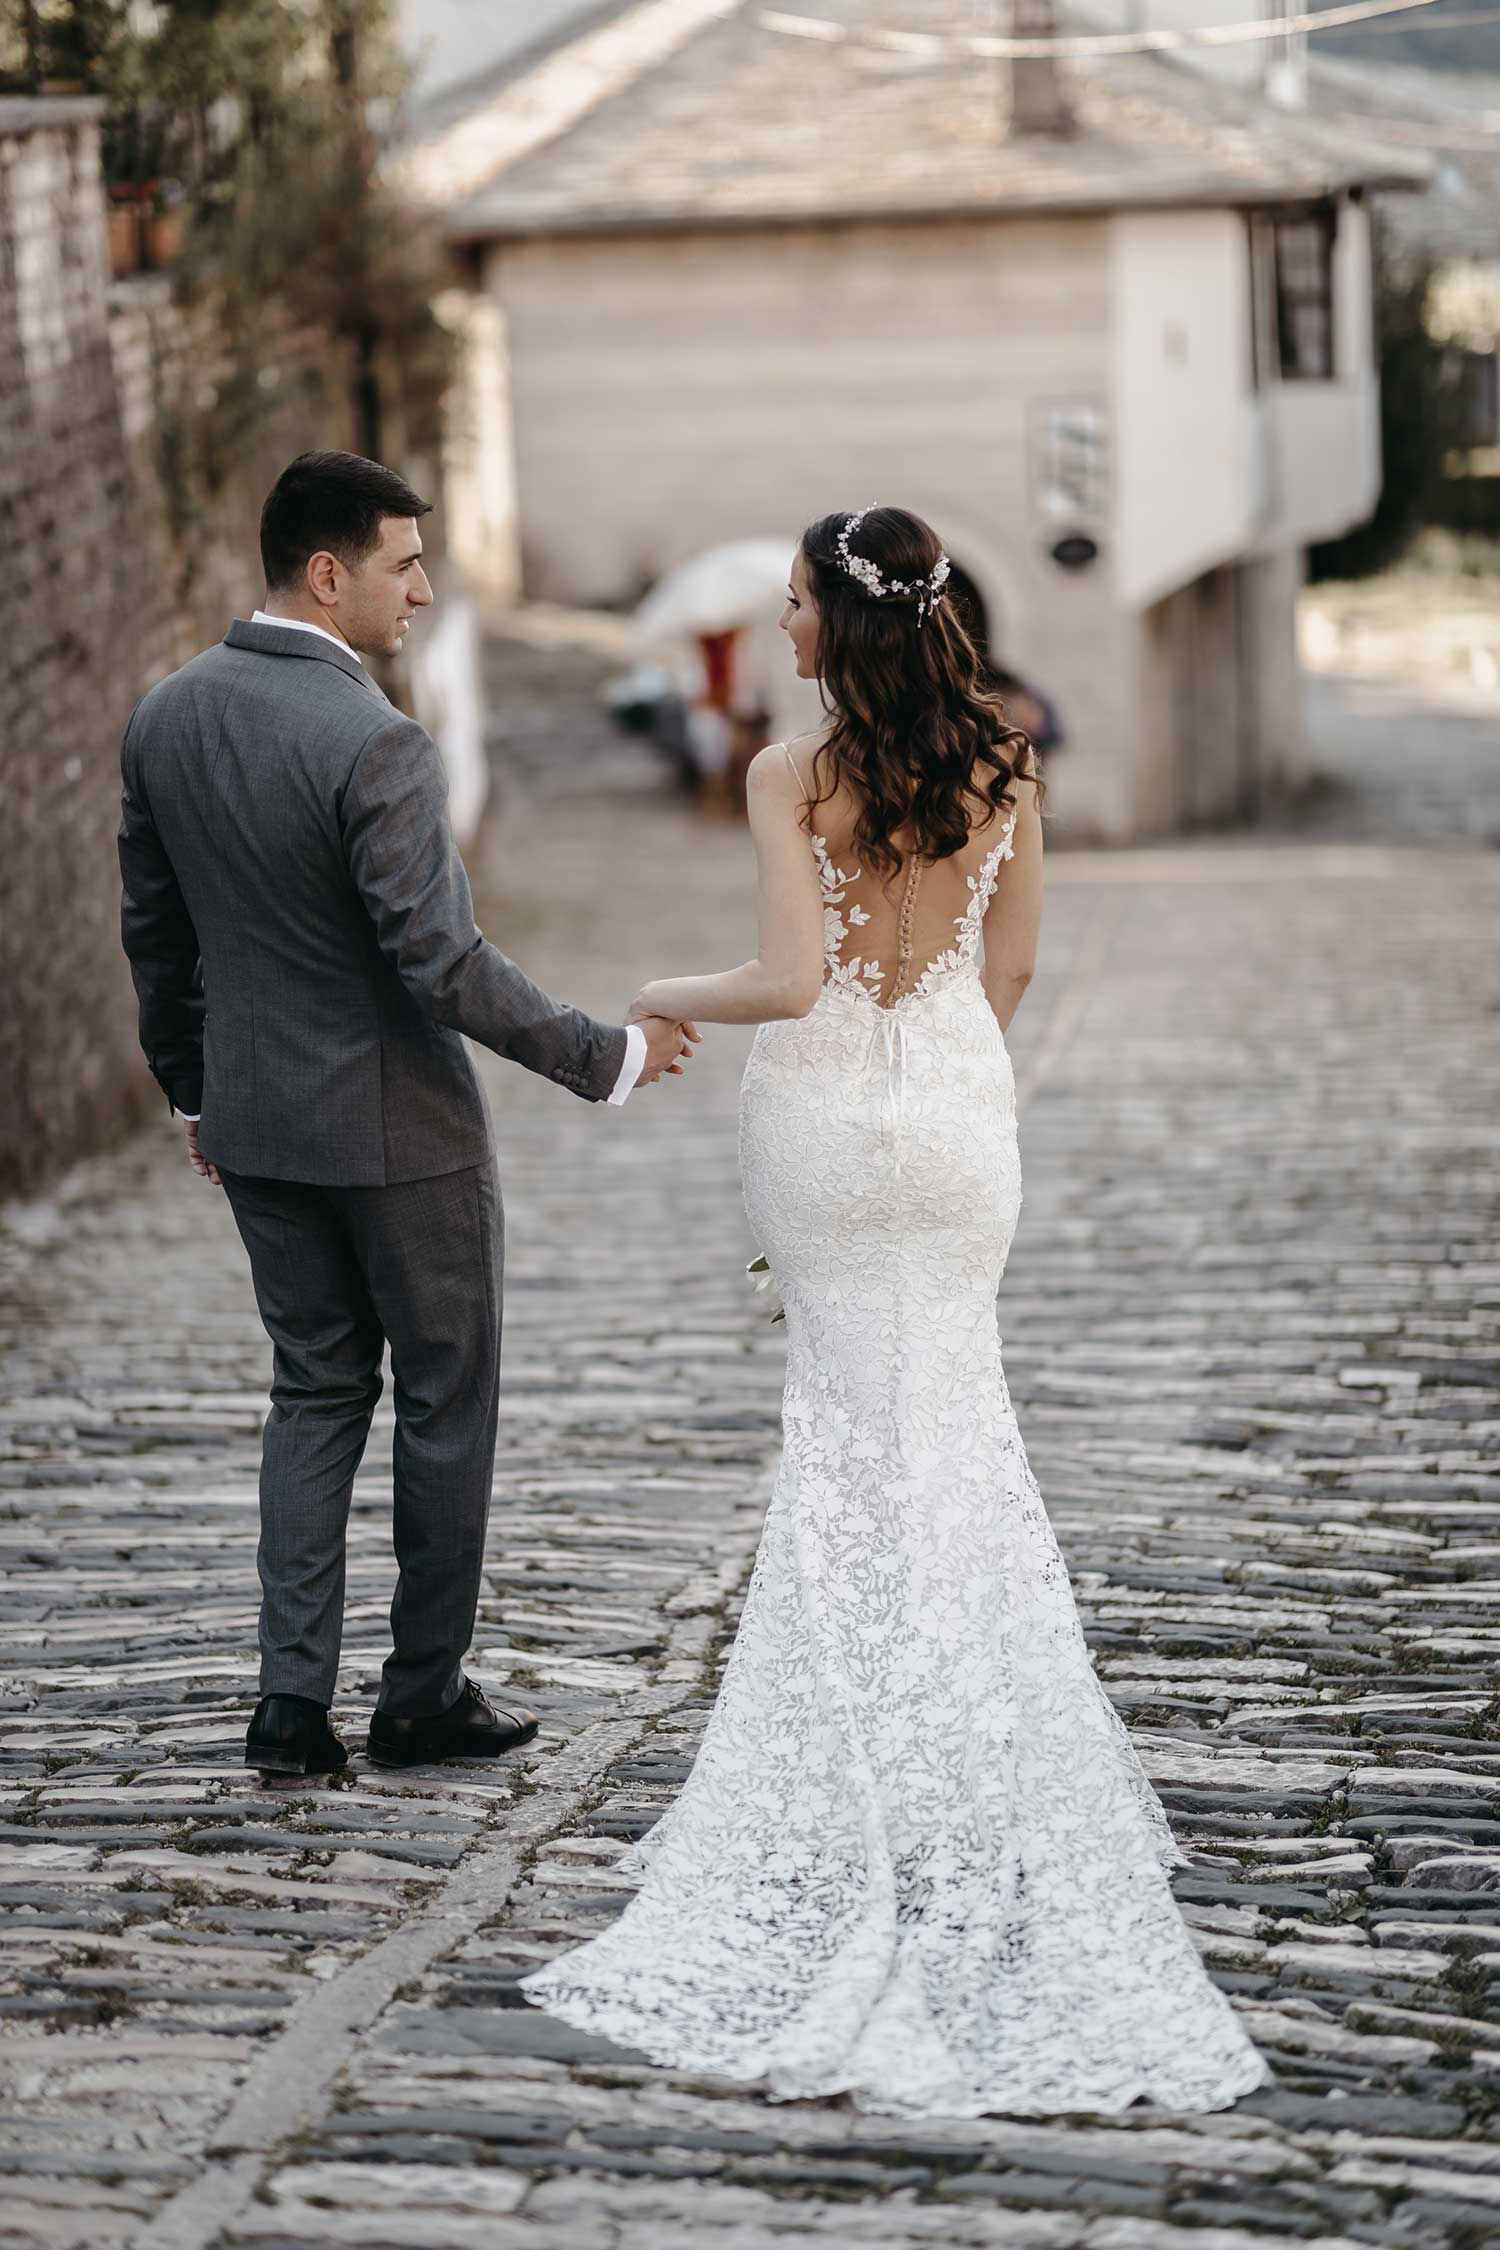 Bride and groom walking down the streets together